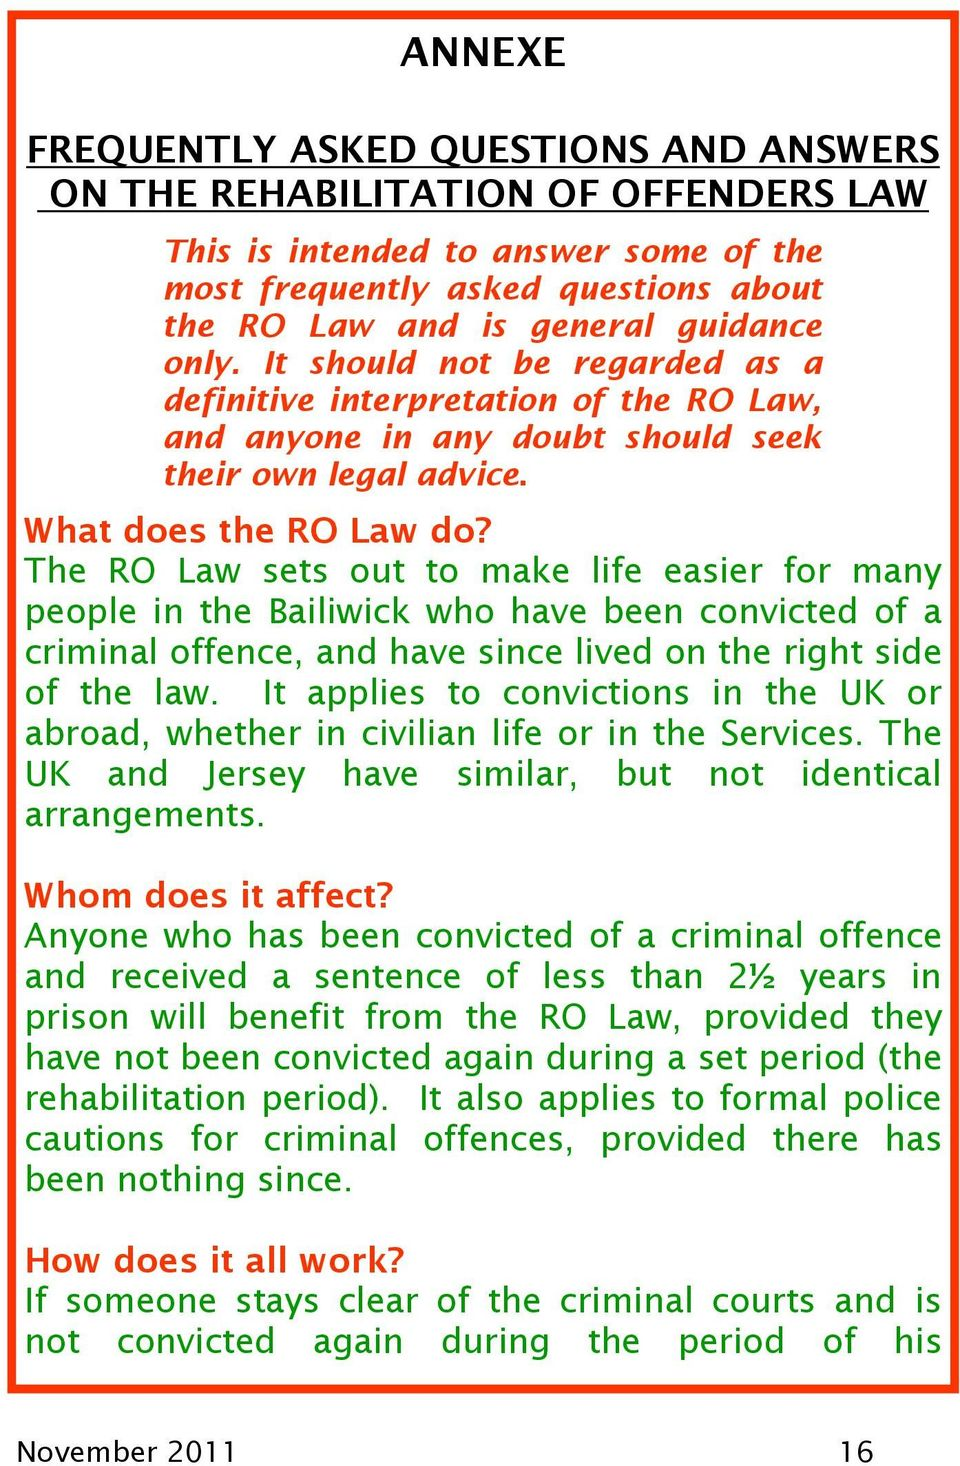 The RO Law sets out to make life easier for many people in the Bailiwick who have been convicted of a criminal offence, and have since lived on the right side of the law.